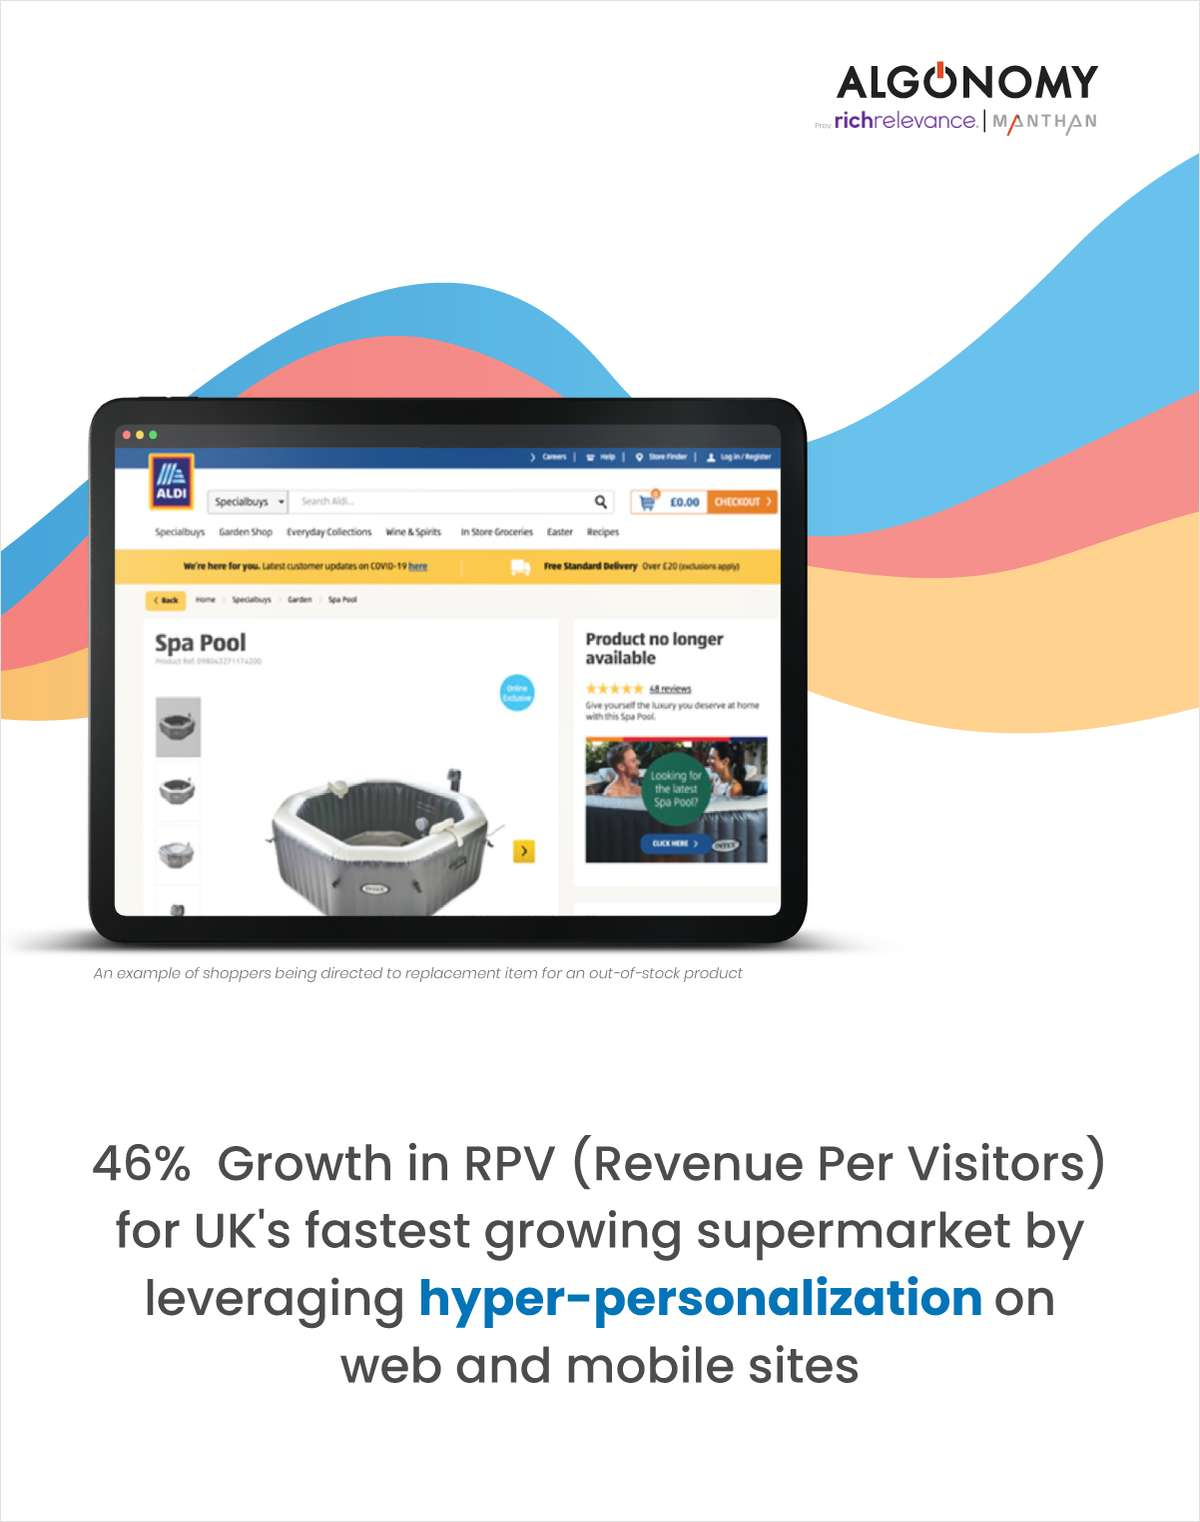 Aldi, UK's fastest growing supermarket grows digital revenue per visitor 46%, ups average order value 10% with hyper-personalization on web and mobile sites